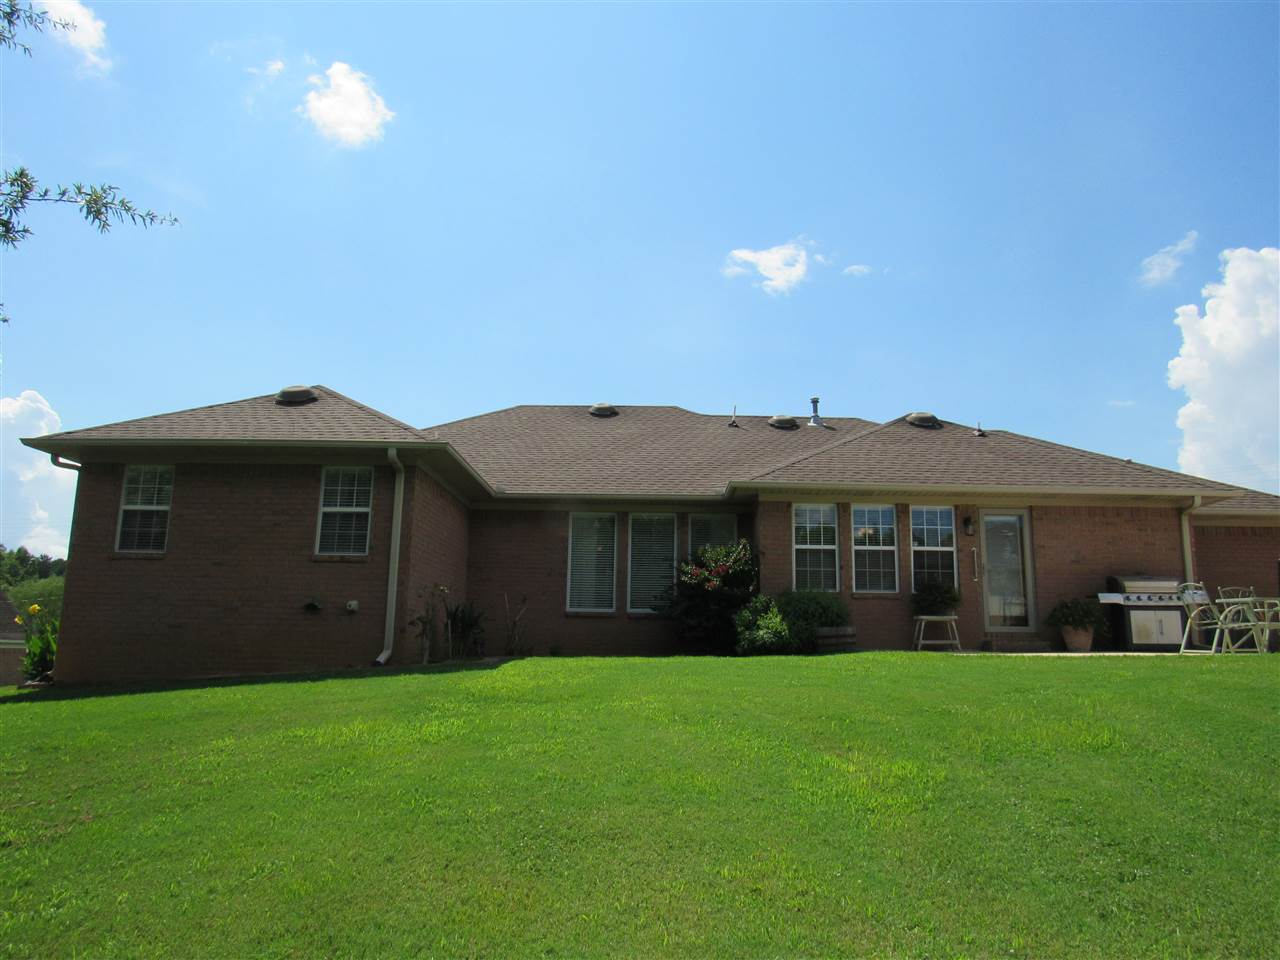 232 Peggy Anne Munford, TN 38058 - MLS #: 10031547